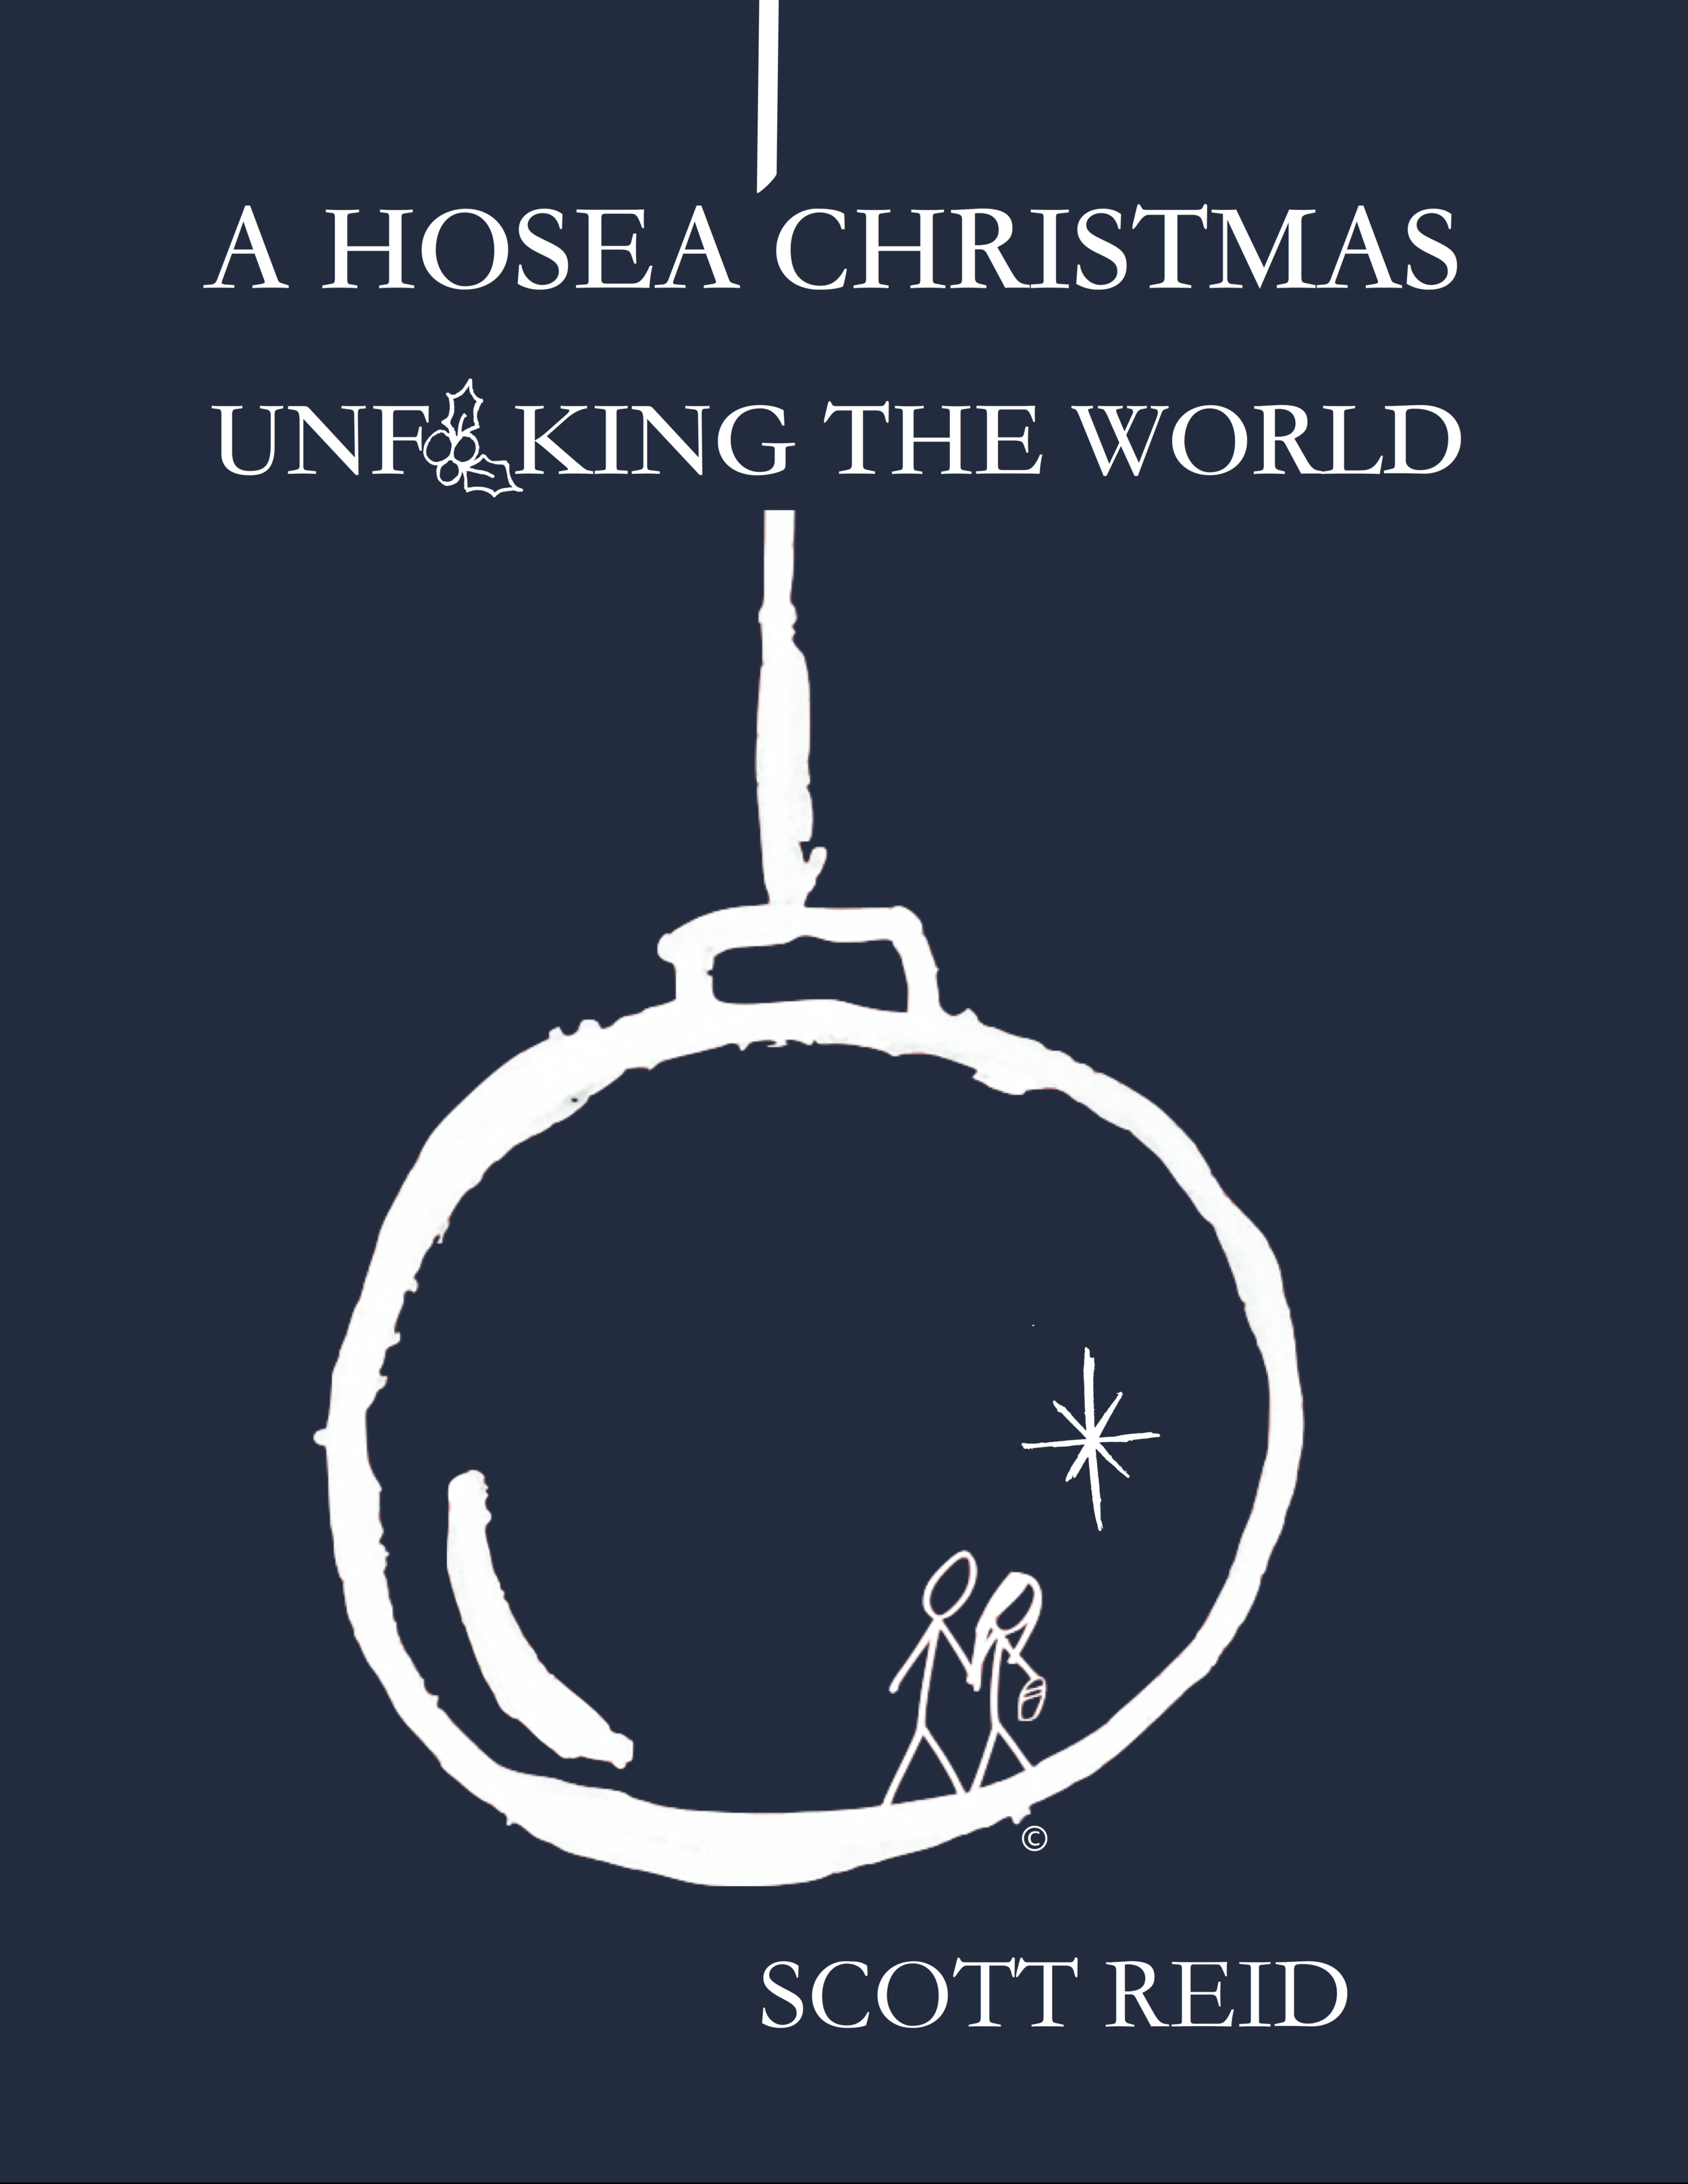 """Exclusively on Amazon now! - A Hosea Christmas, Unf**king the World takes the long view of the Christmas story. More than anything, it is a Gospel story. It is as visceral in the telling as it is in the living. Mankind has been and continues to be fornicated from the Divine Lover. The hurt and pain of our past––our present––our anxieties concerning the future, are the fruit of this. """"Long lay the world in sin and error pining"""" until Jesus appeared and unf––ked the world."""